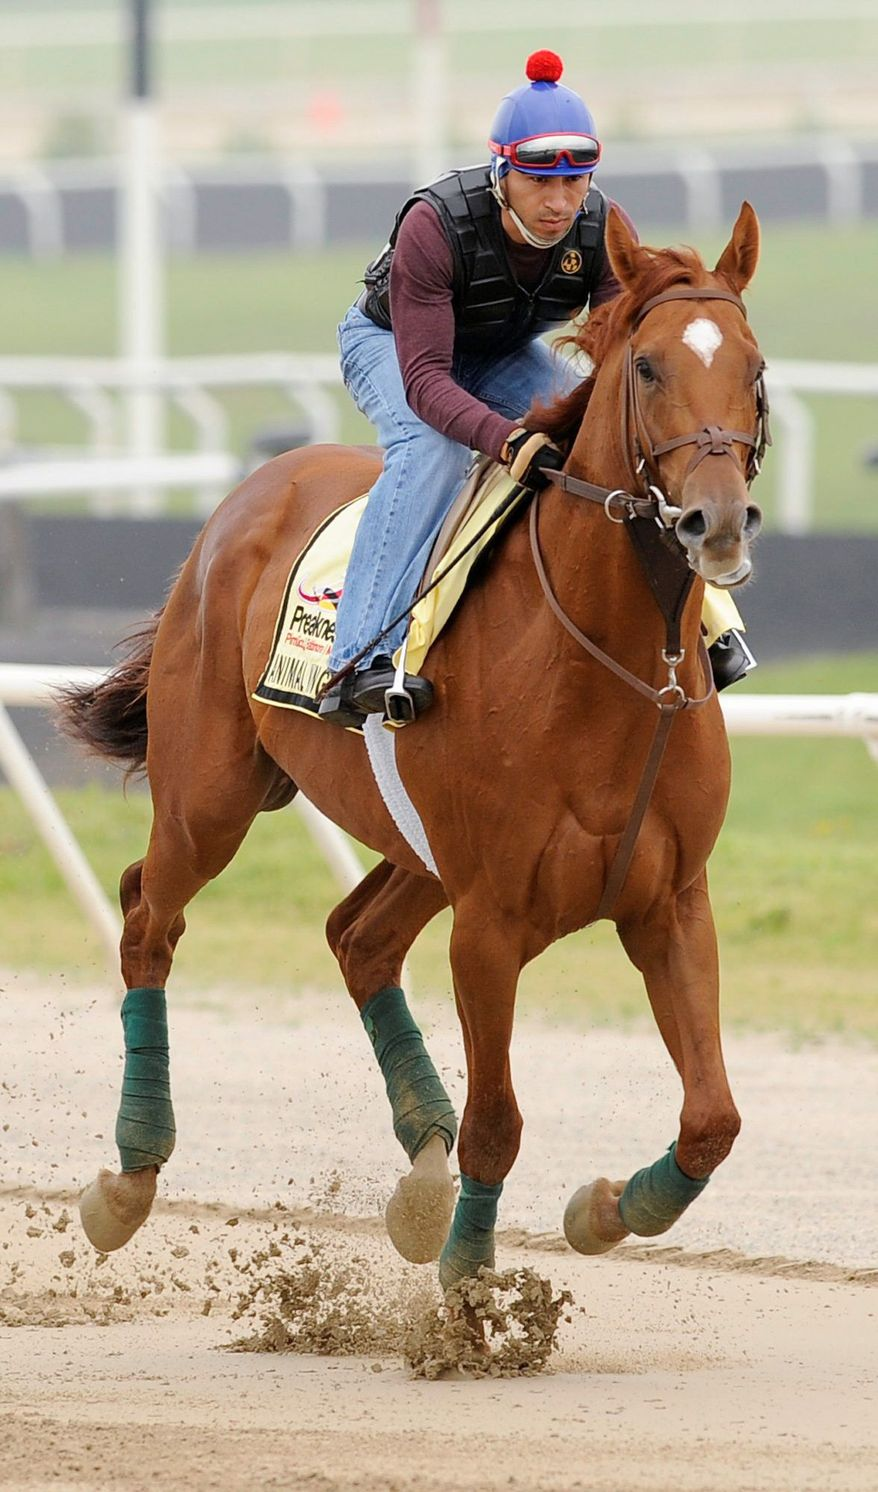 Kentucky Derby winner Animal Kingdom with David Nava aboard gets a morning work out at the Fair Hill Training Center on Monday, May 16, 2011 in Fair Hill, Md. Animal Kingdom and his trainer Graham Motion are preparing for the 136th Preakness Stakes race Saturday in Baltimore. (AP Photo/Jim Dietz)